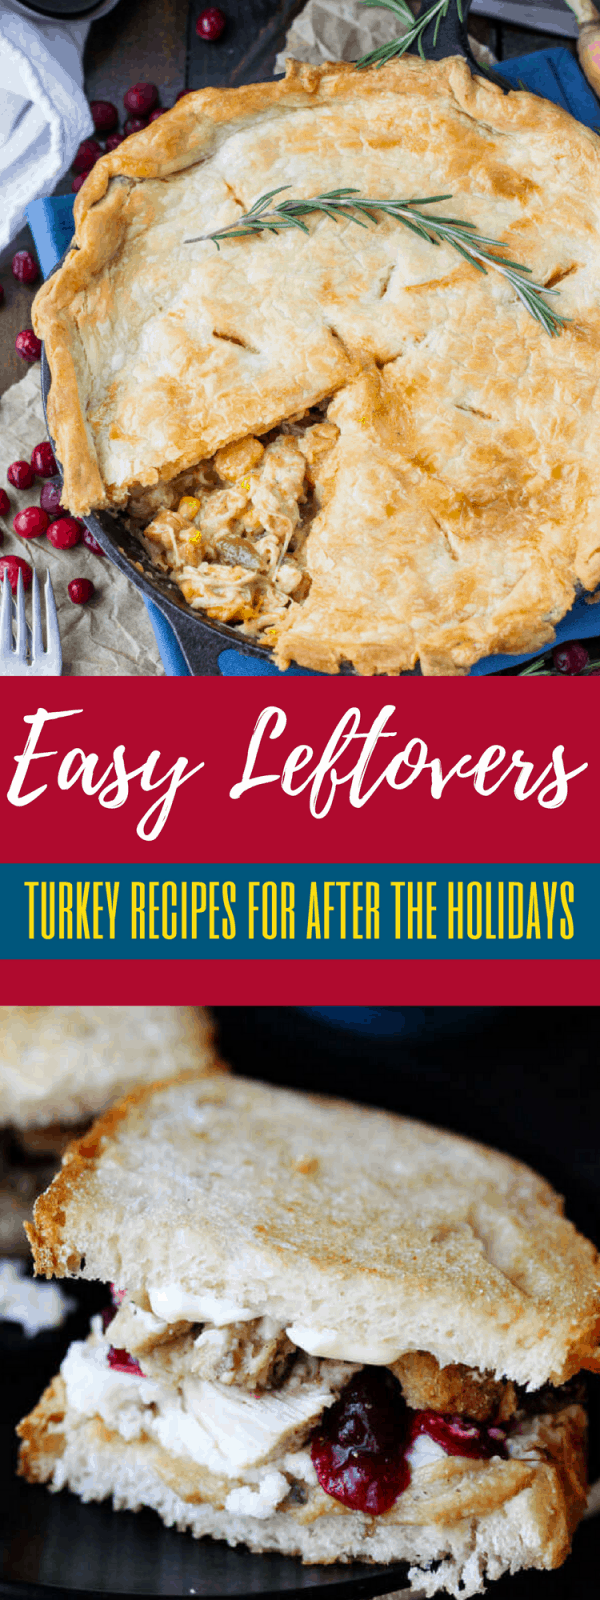 Easy leftover turkey recipes for this holiday season! Make sure to use that leftover Thanksgiving turkey in a pot pie, soup, or casserole!